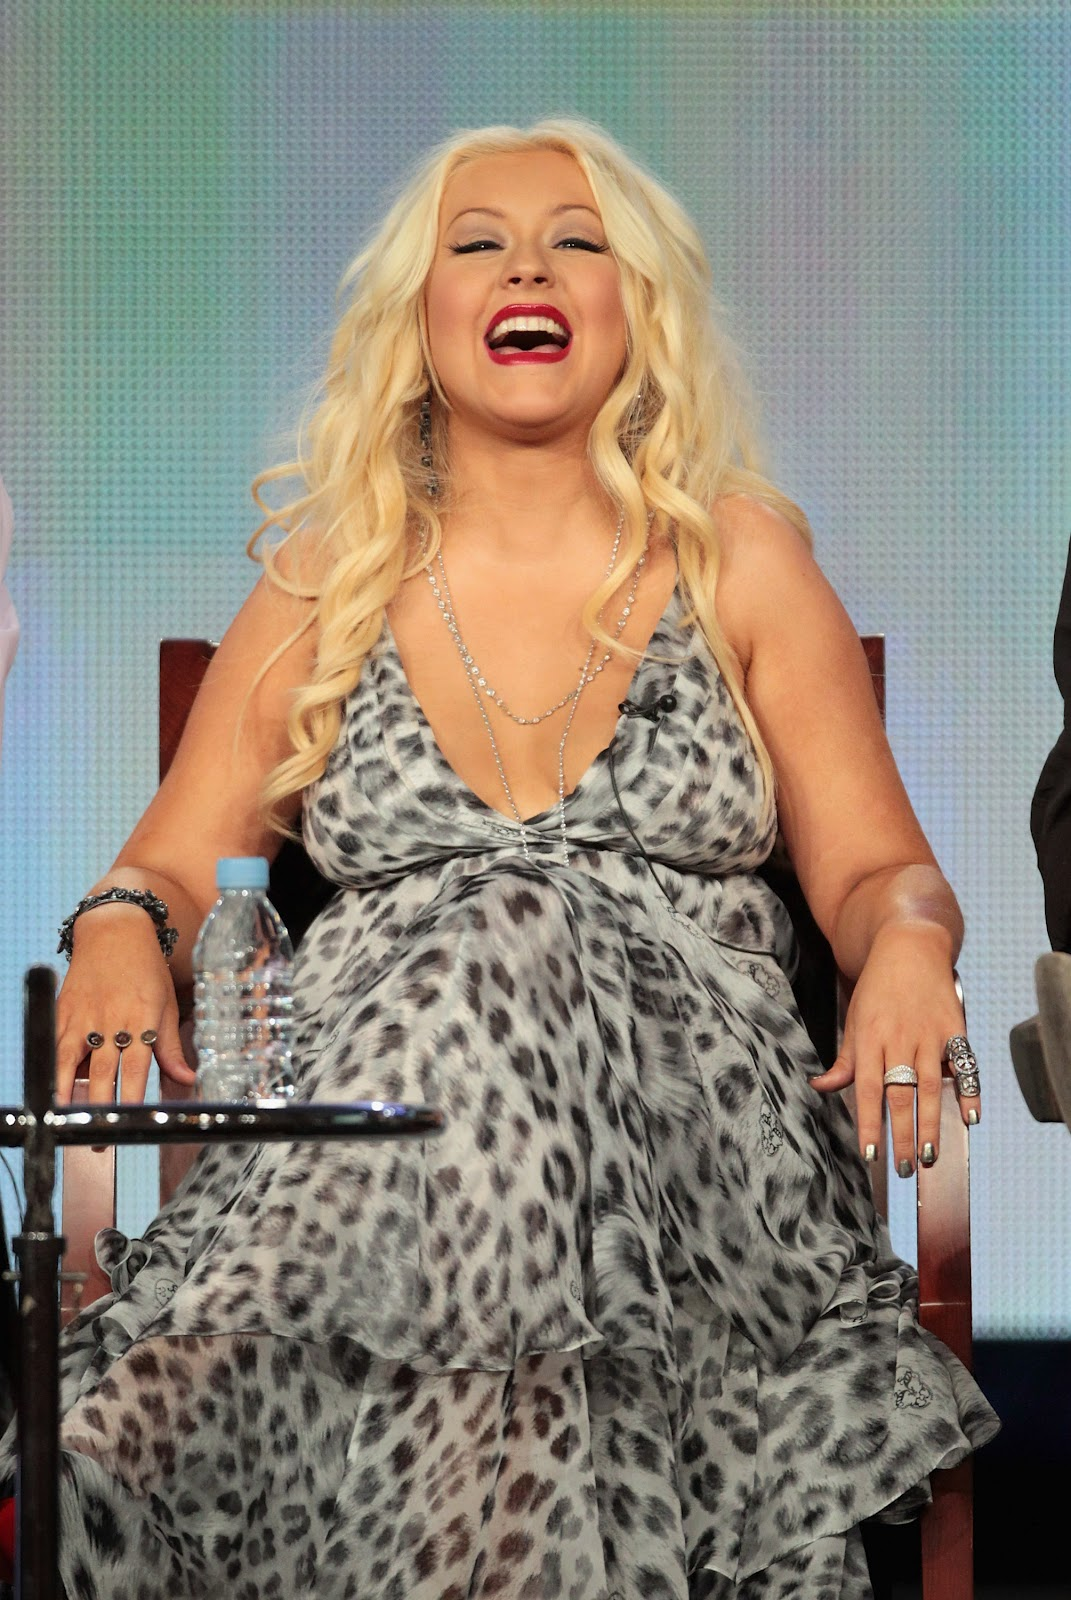 http://3.bp.blogspot.com/-do2-EE1WPCY/T20dP-dmyVI/AAAAAAAAMEM/IS3CUtcmHWg/s1600/christina-aguilera-winter-tca-tour-0109-2.jpg